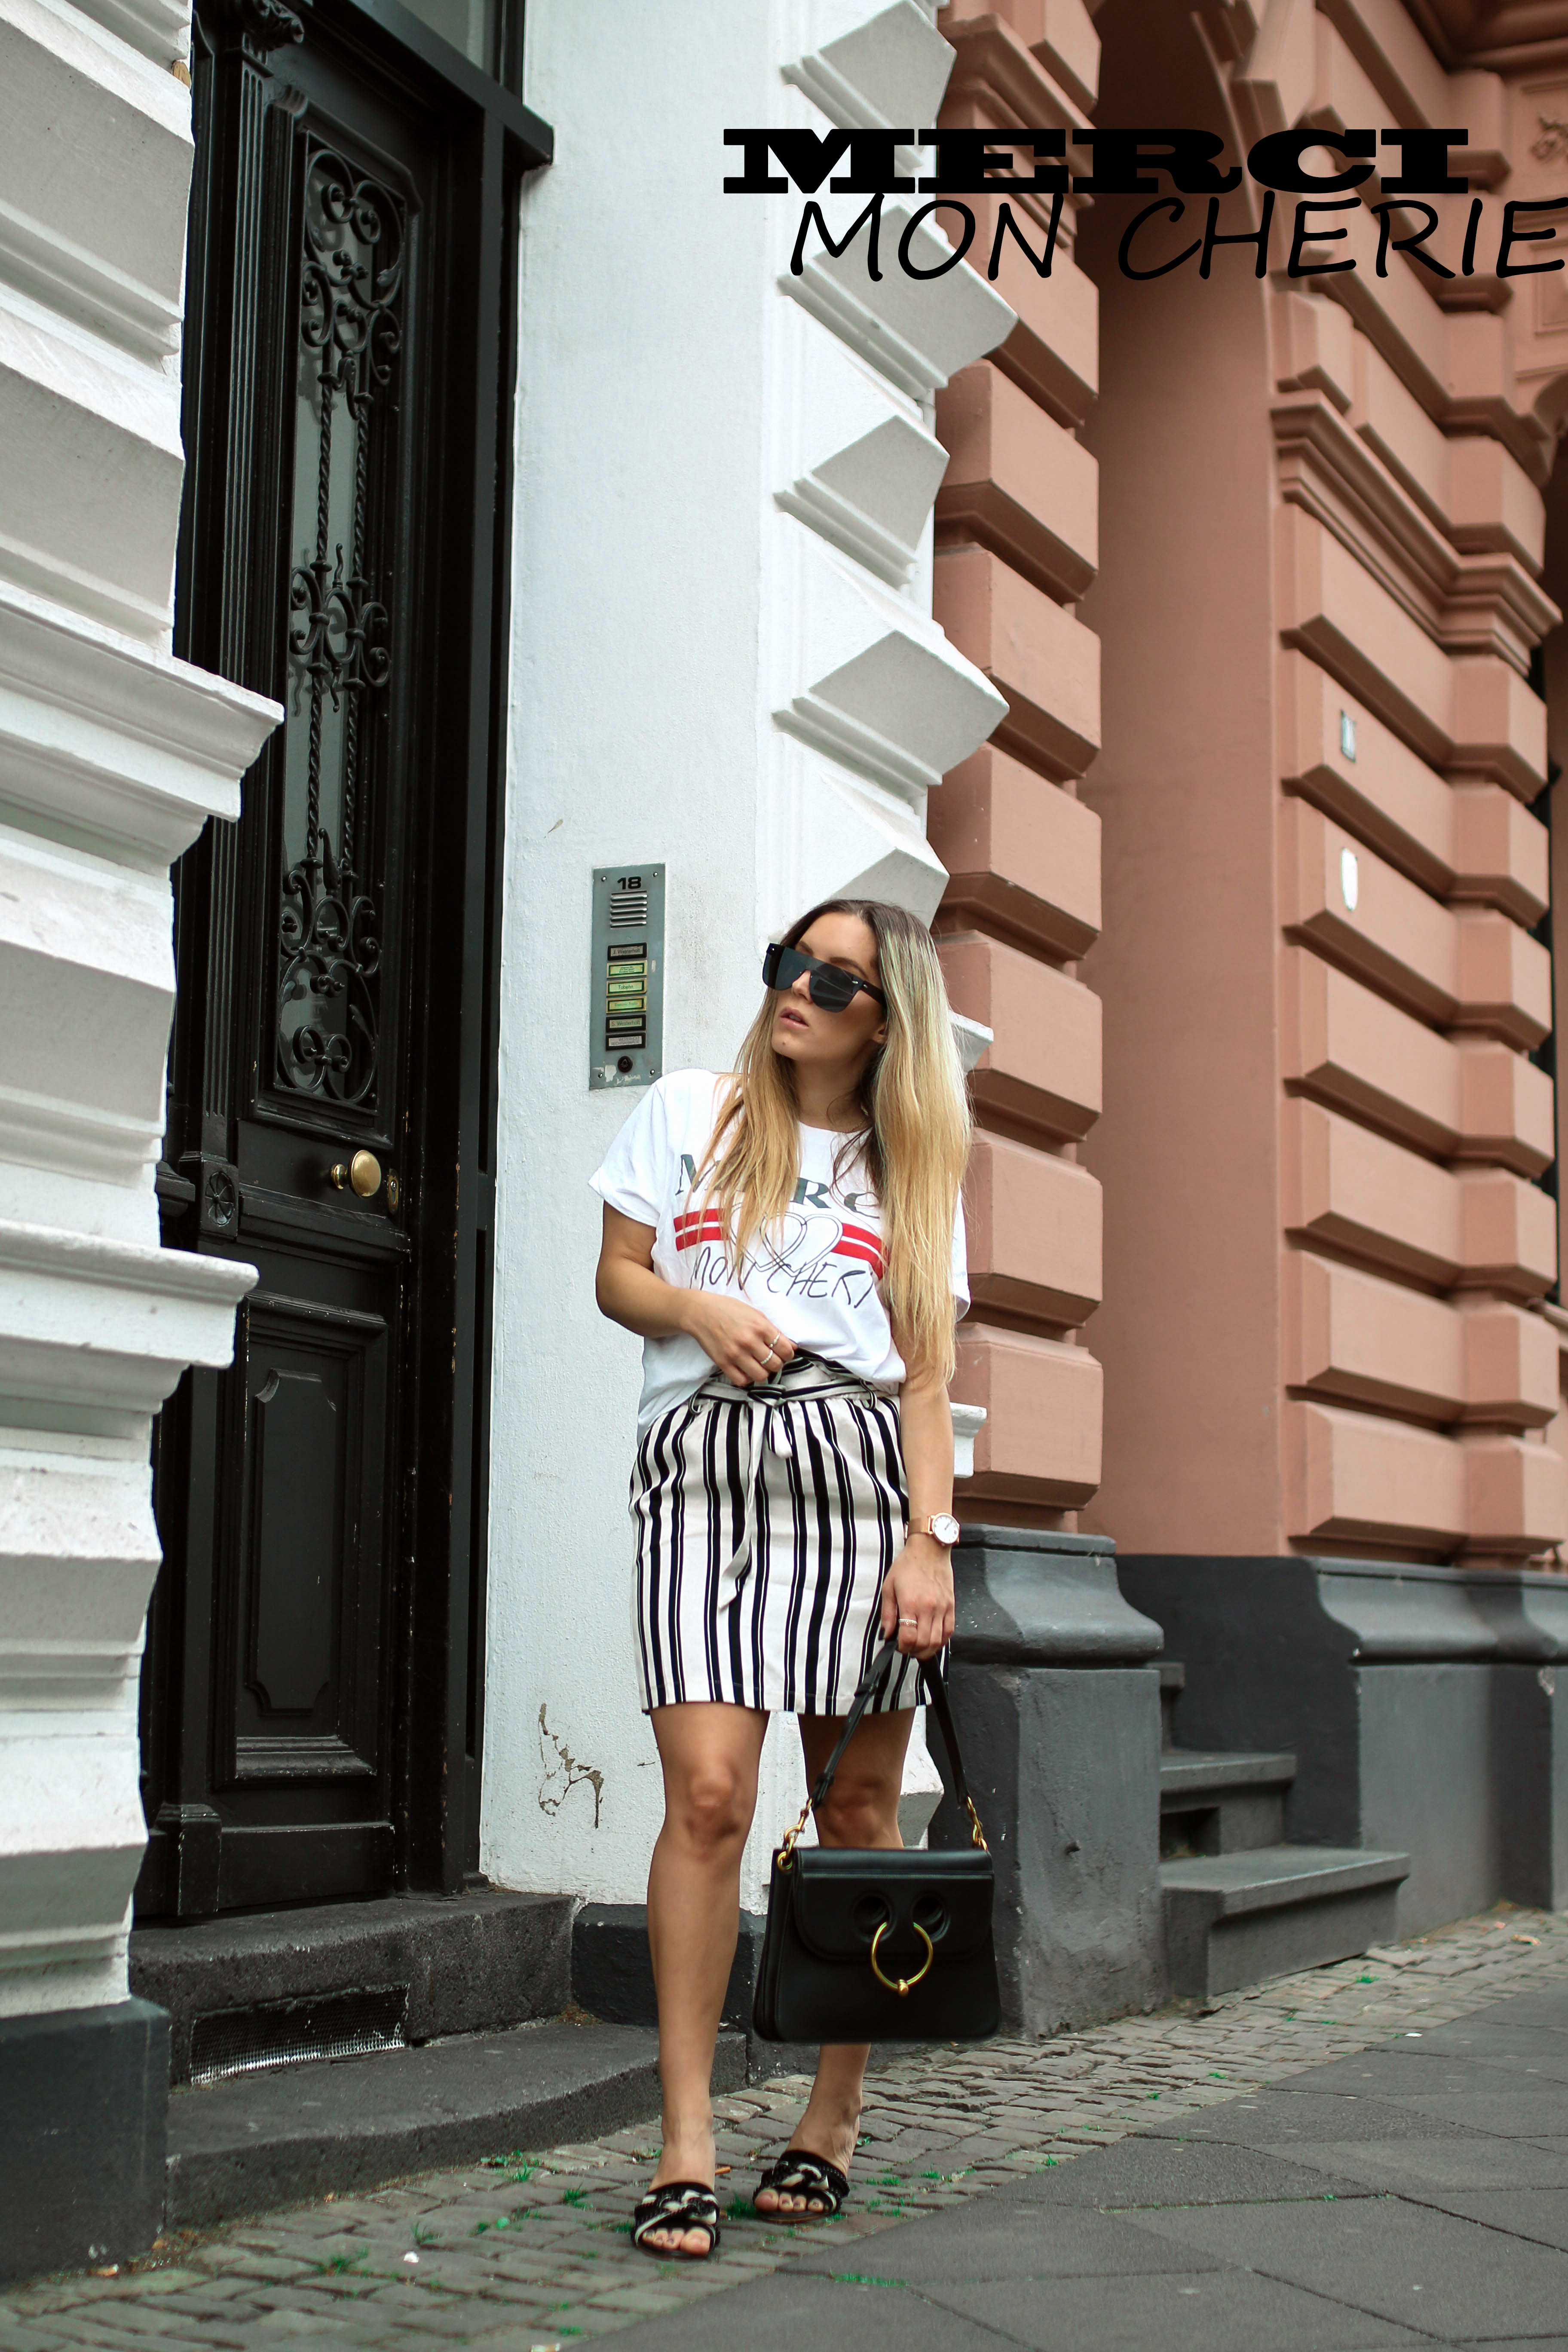 statement shirts gucci shirt dupe lookalike fashion blog outfit piercing bag